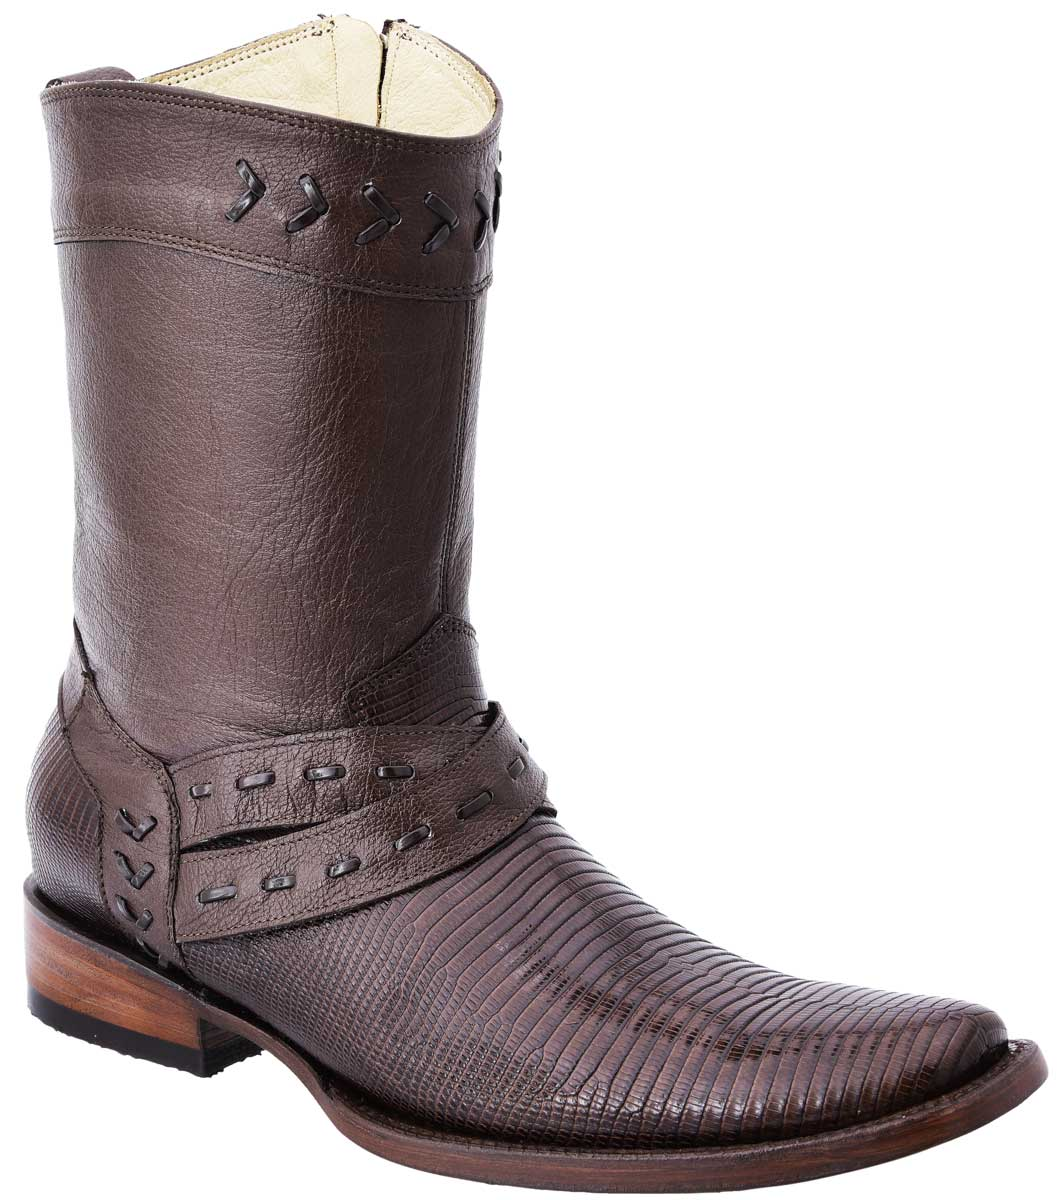 Men's Casual Boots Genuine Exotic Lizard Leather White Diamonds Boots 10-015 Brown